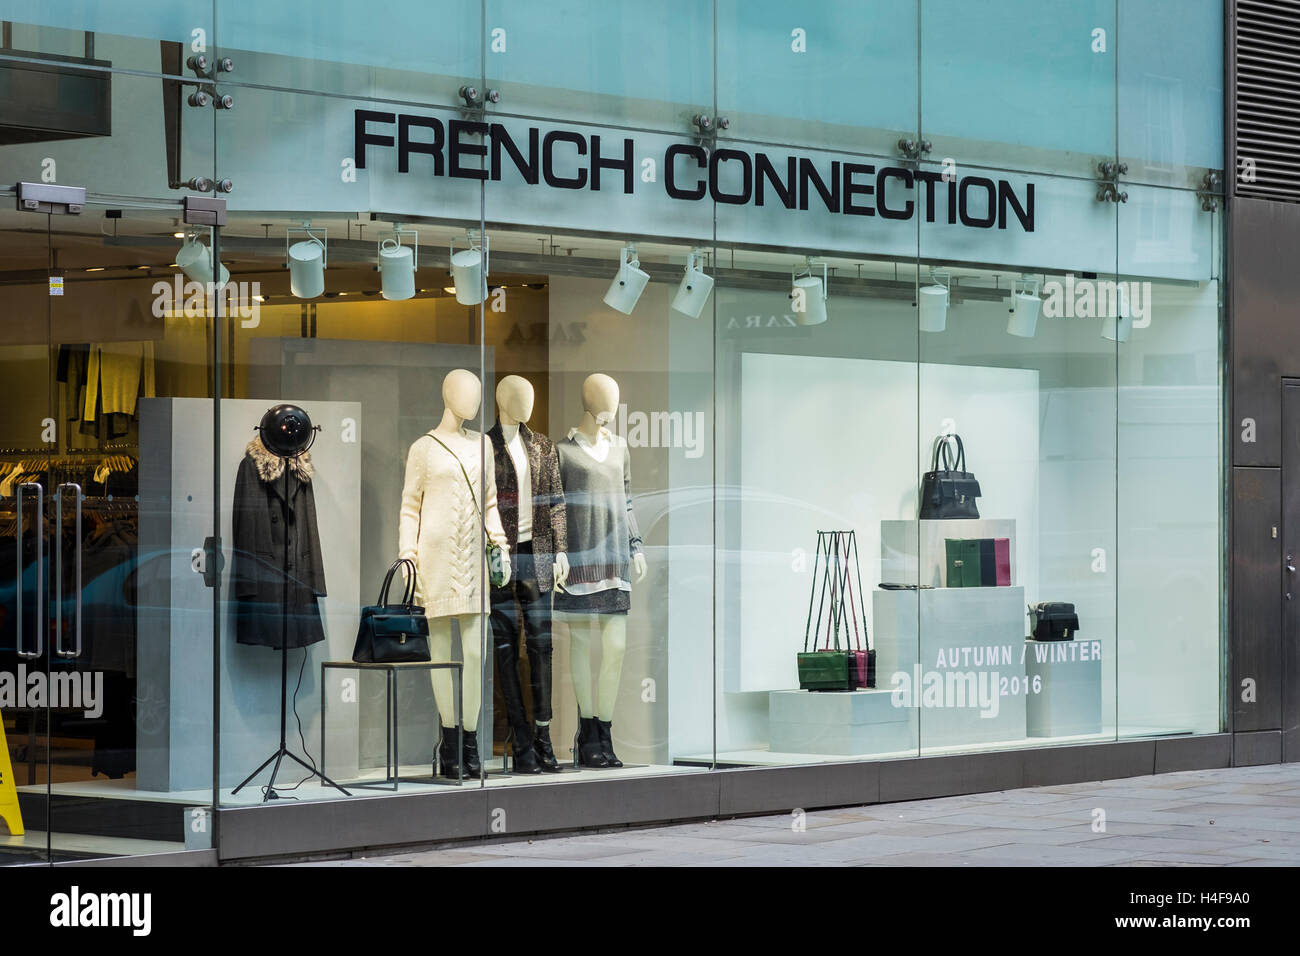 abcb25c8d77 French Connection shop window, Covent Garden, London, England, U.K ...